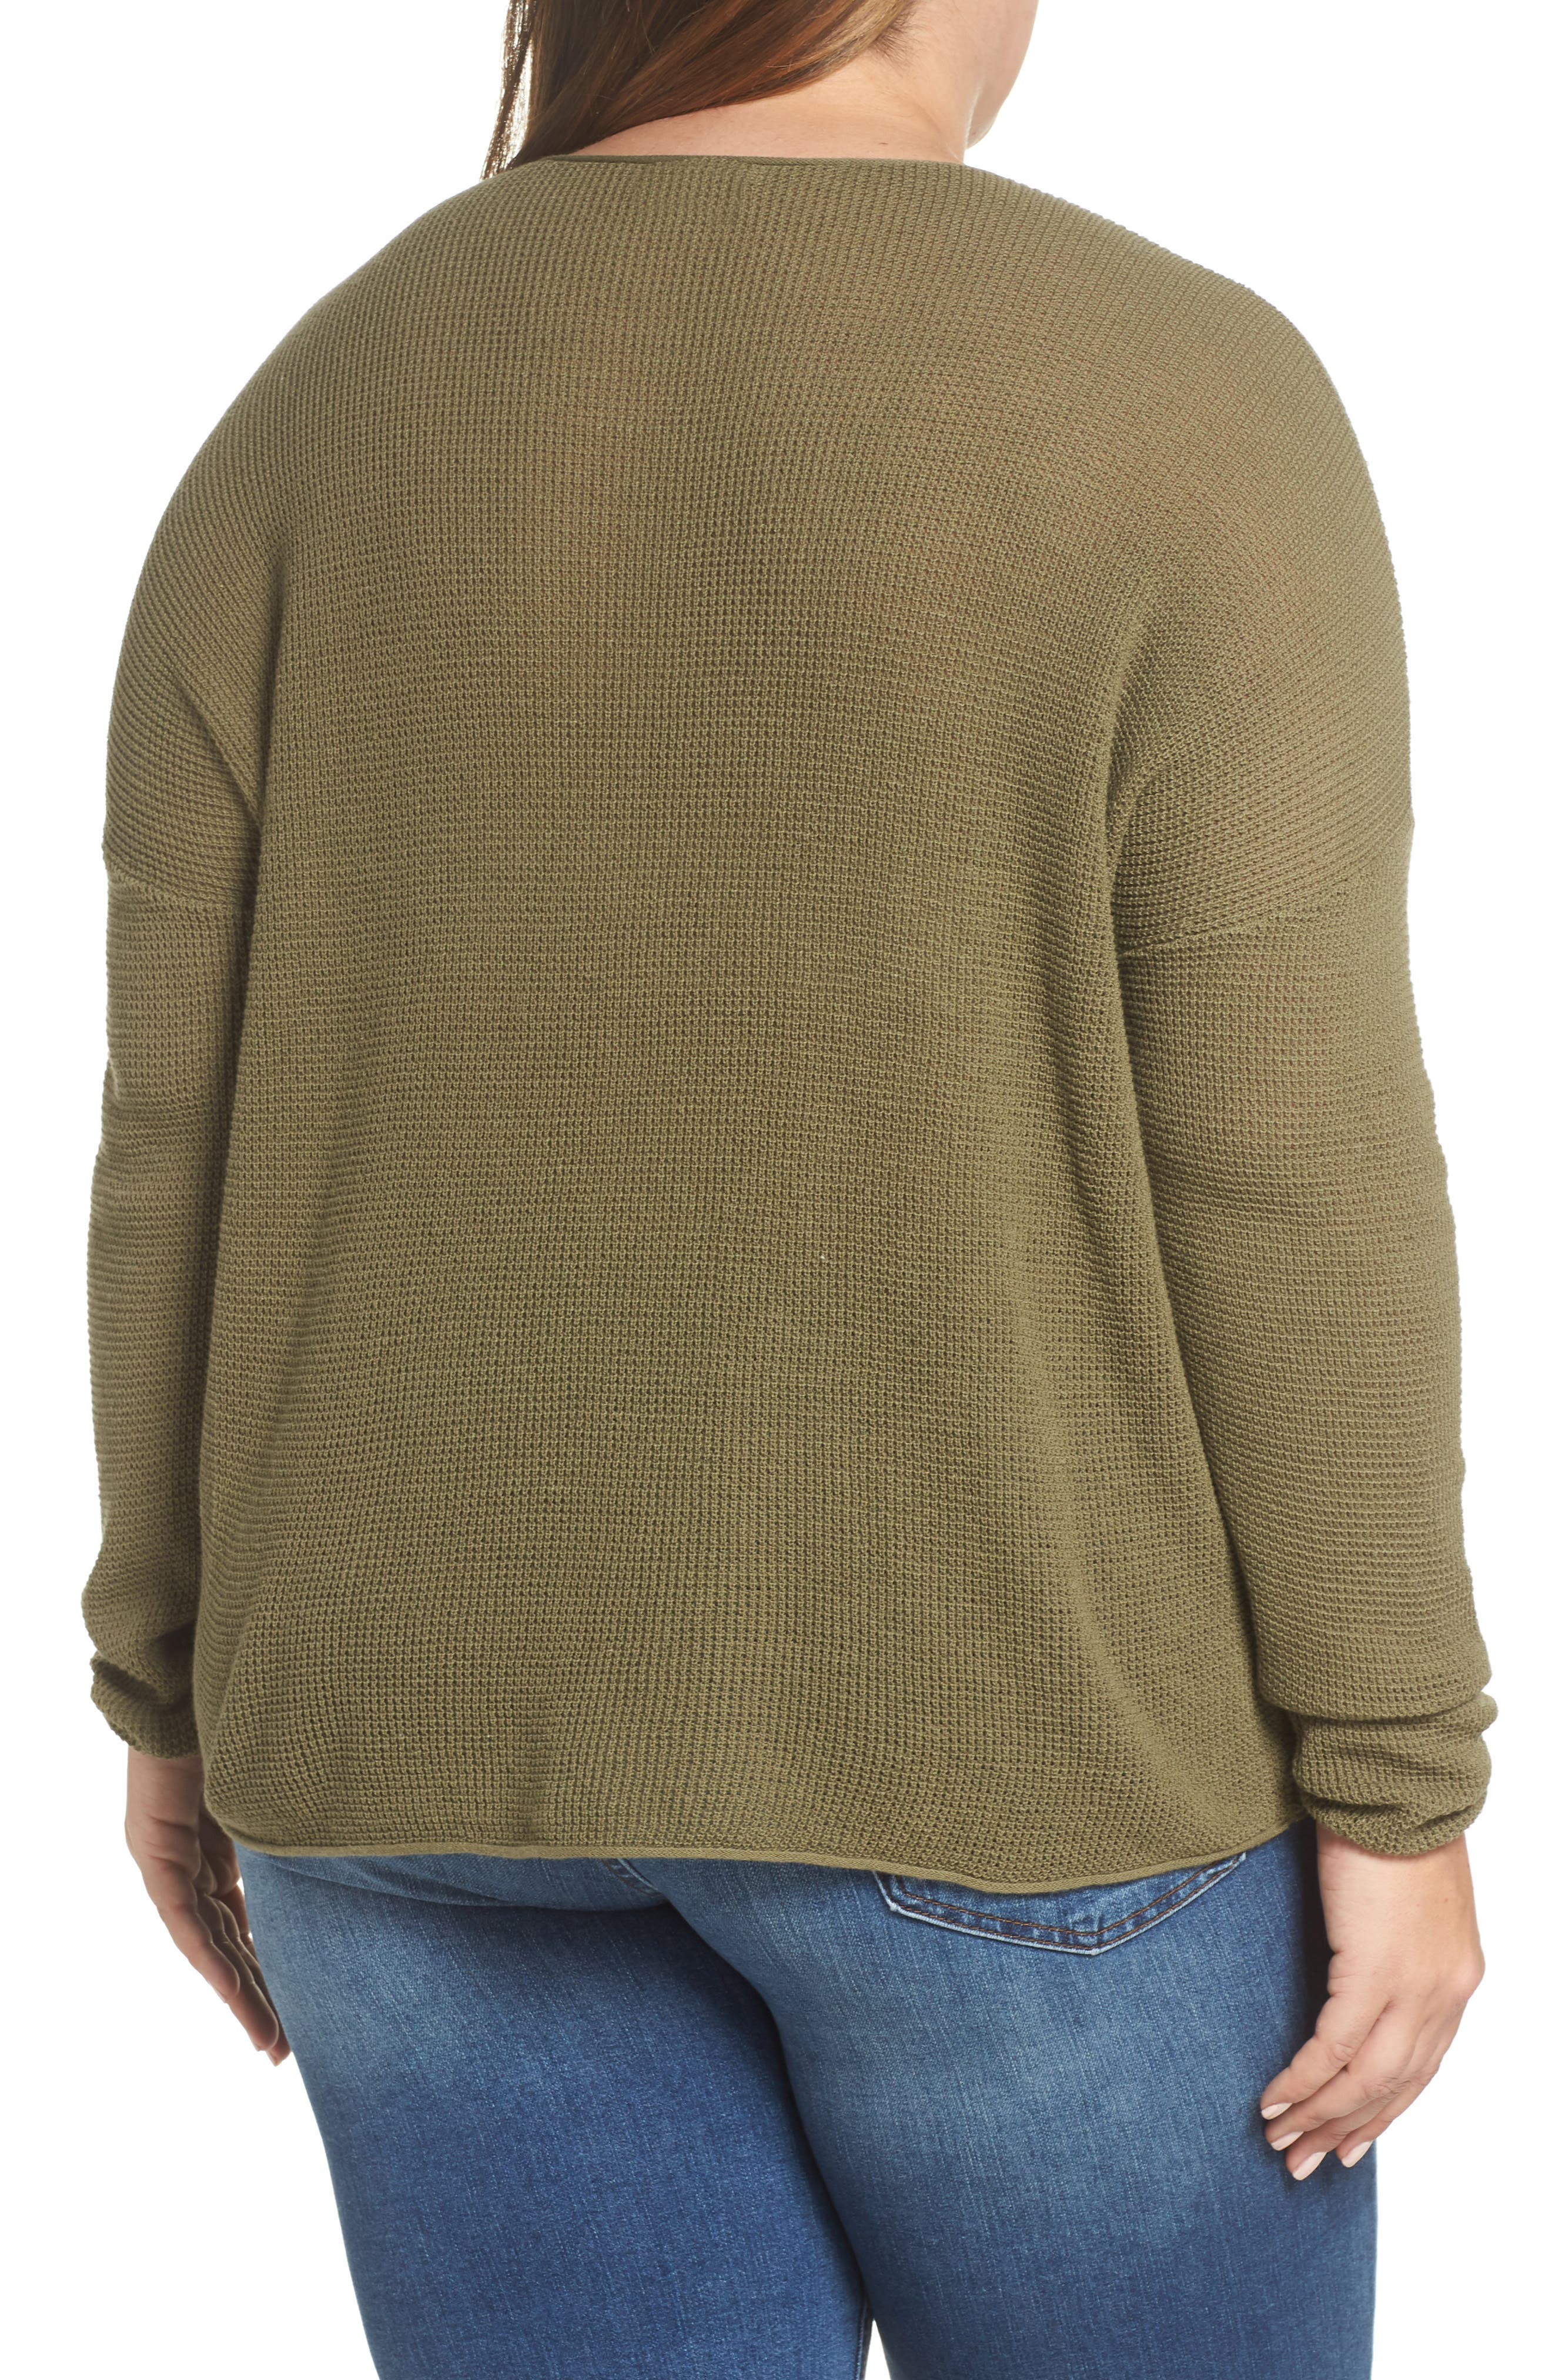 Coastal Thermal Sweater,                             Alternate thumbnail 8, color,                             OLIVE BURNT